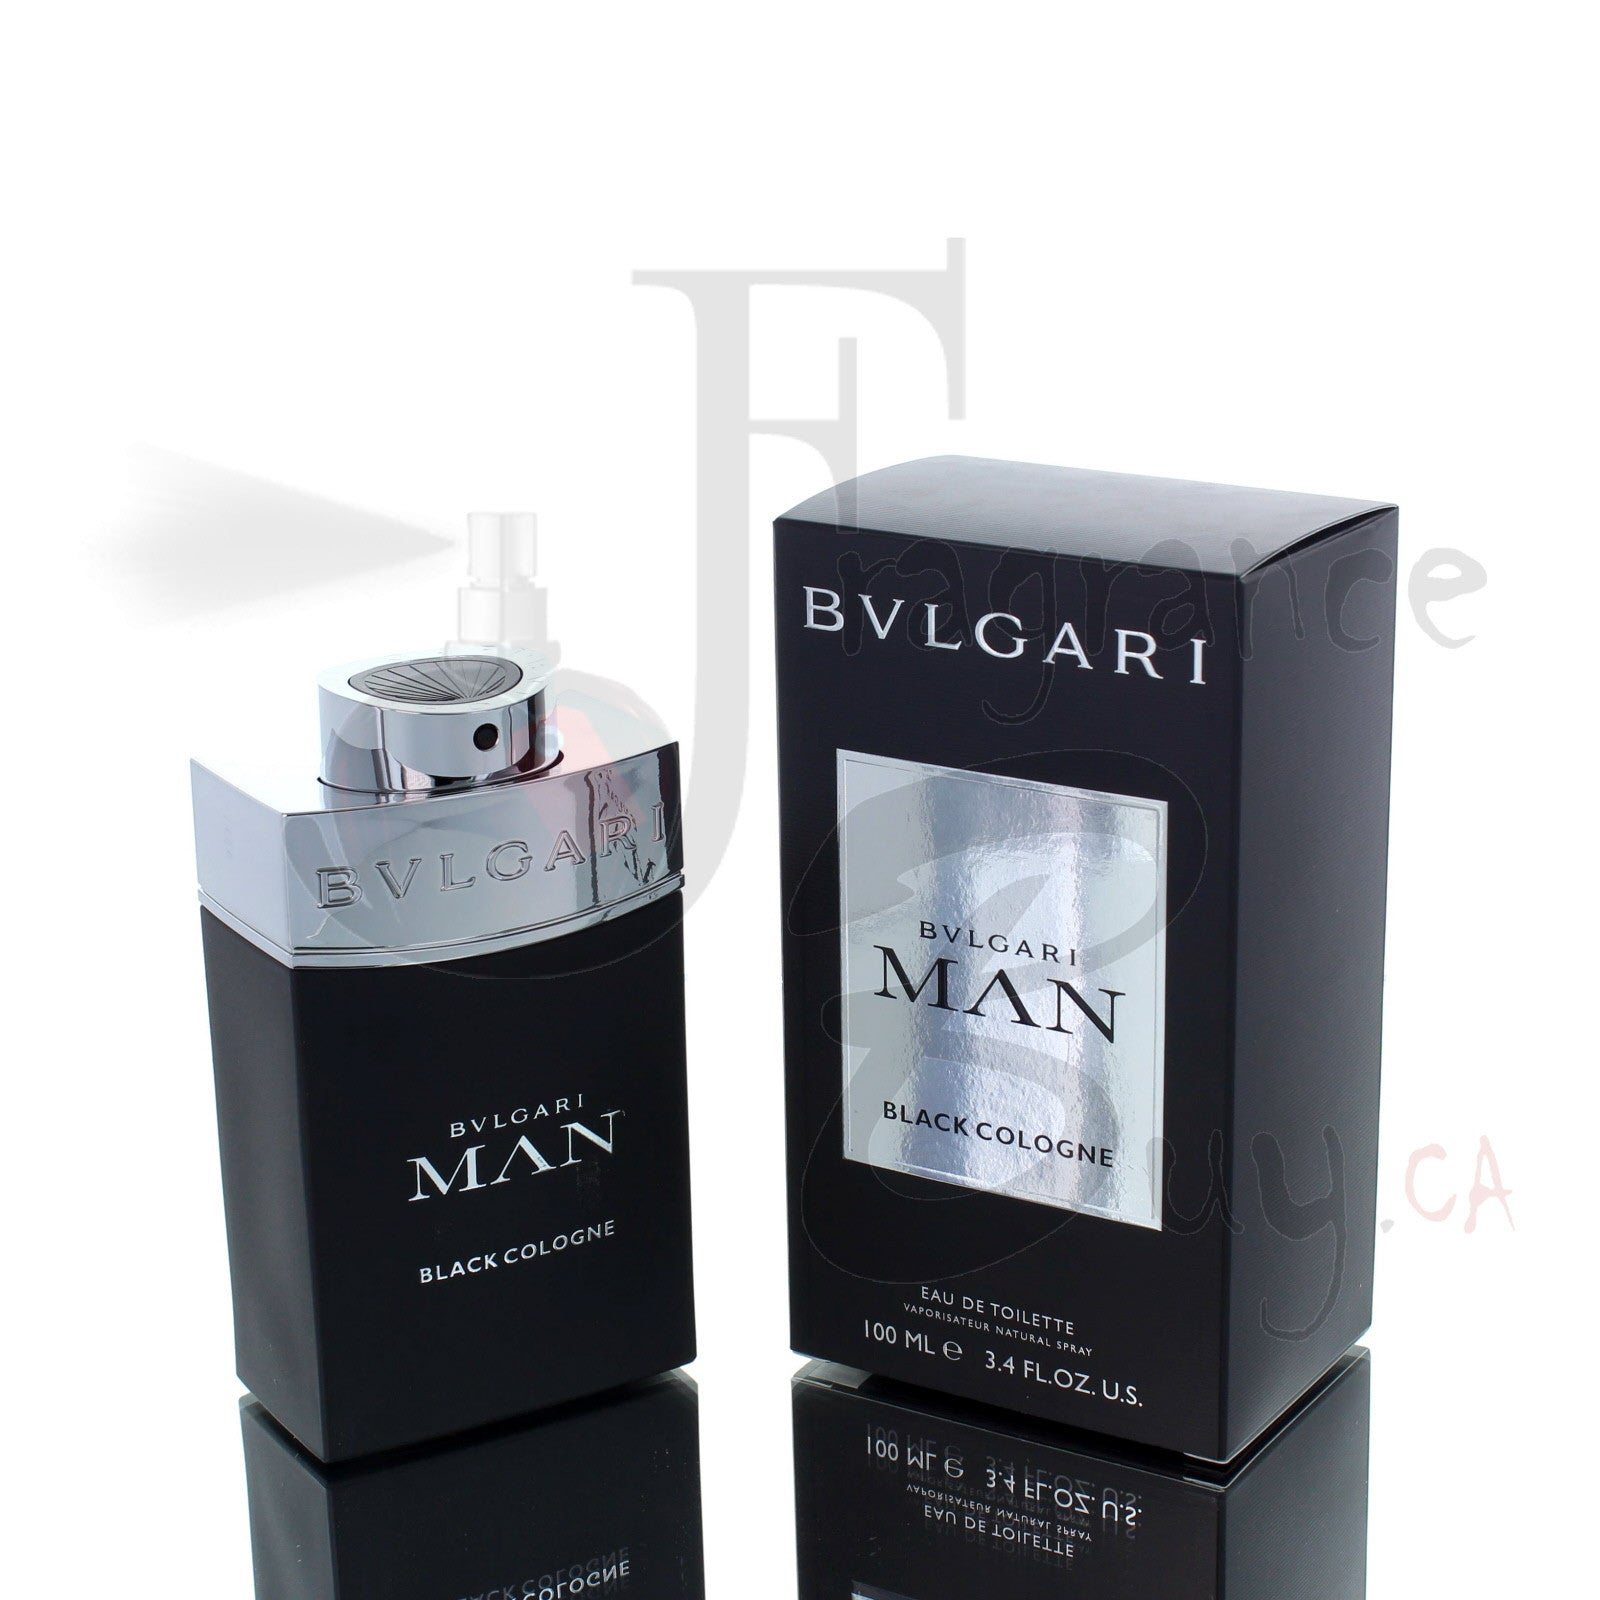 Bvlgari Man Black Cologne Edition For Man